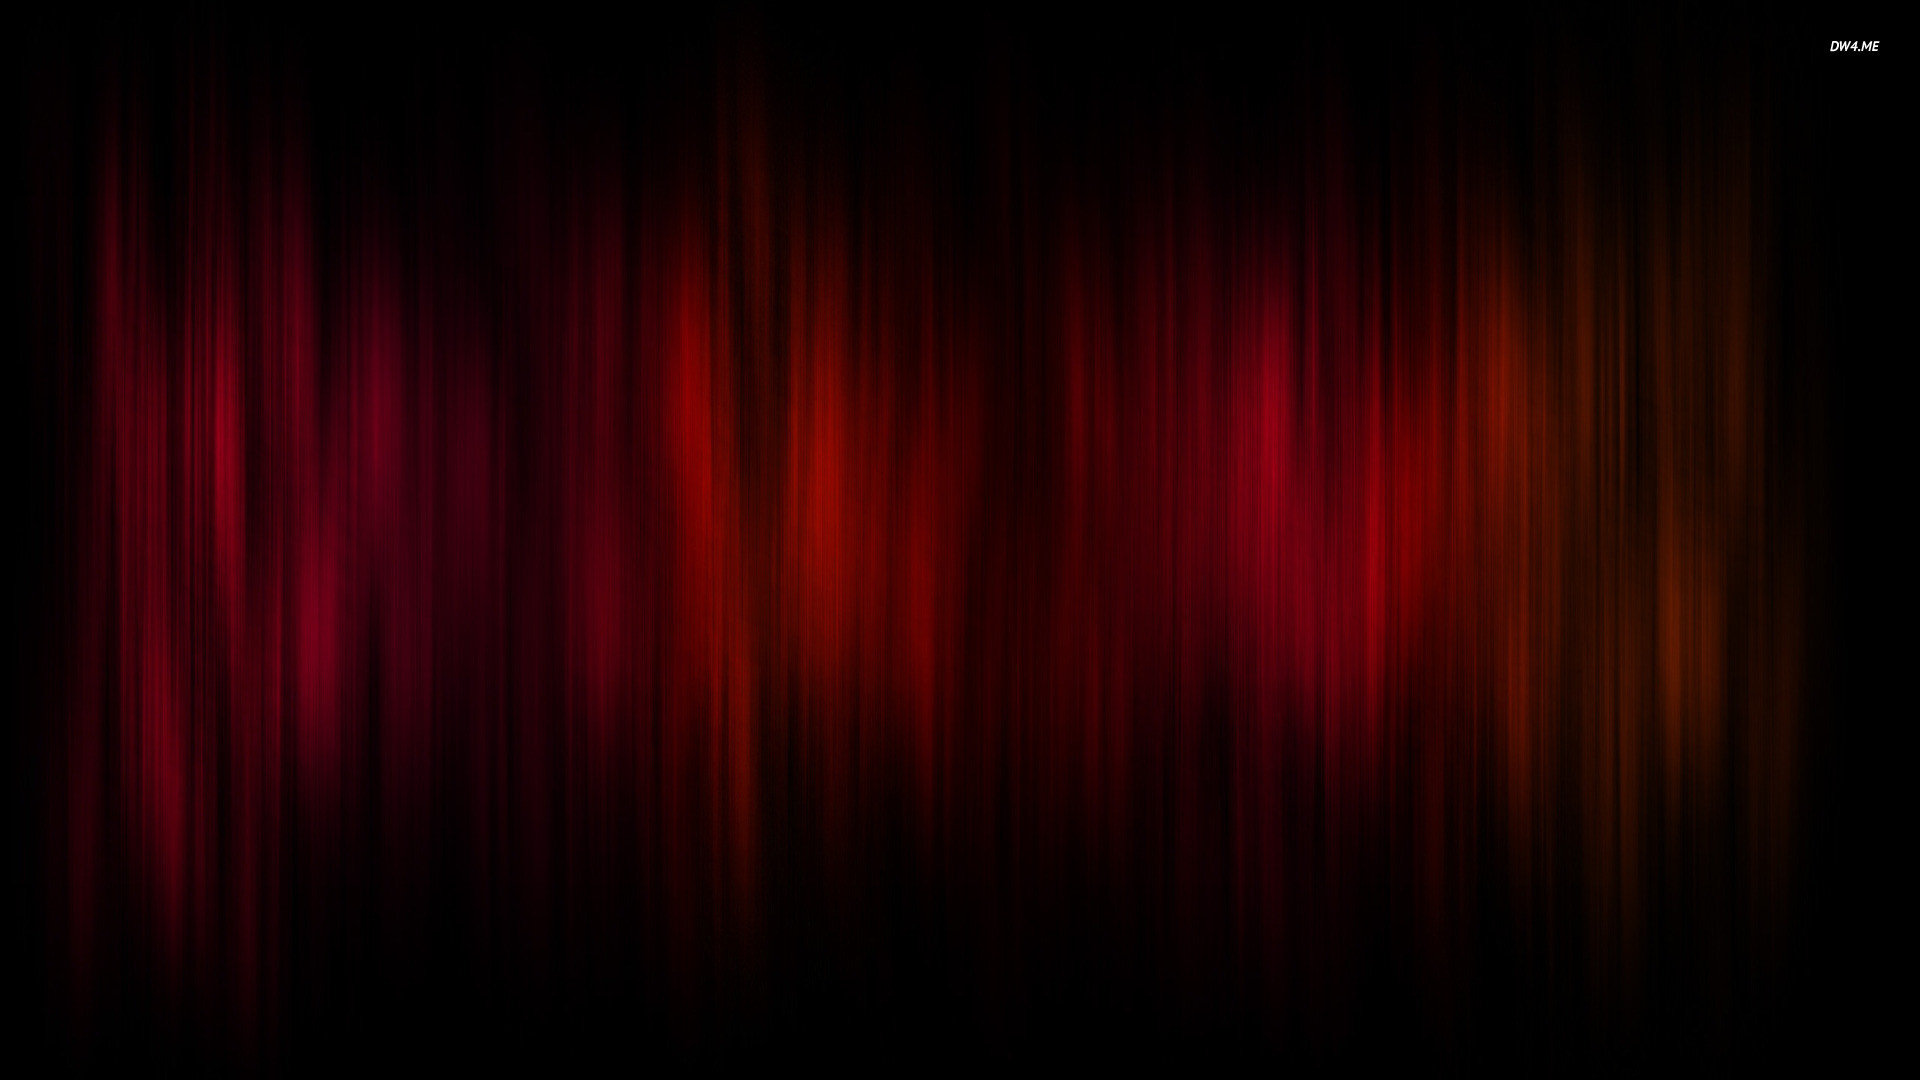 1920x1080 Awesome Red And Black Abstract Photos | Red And Black Abstract Wallpapers -  HD Wallpapers